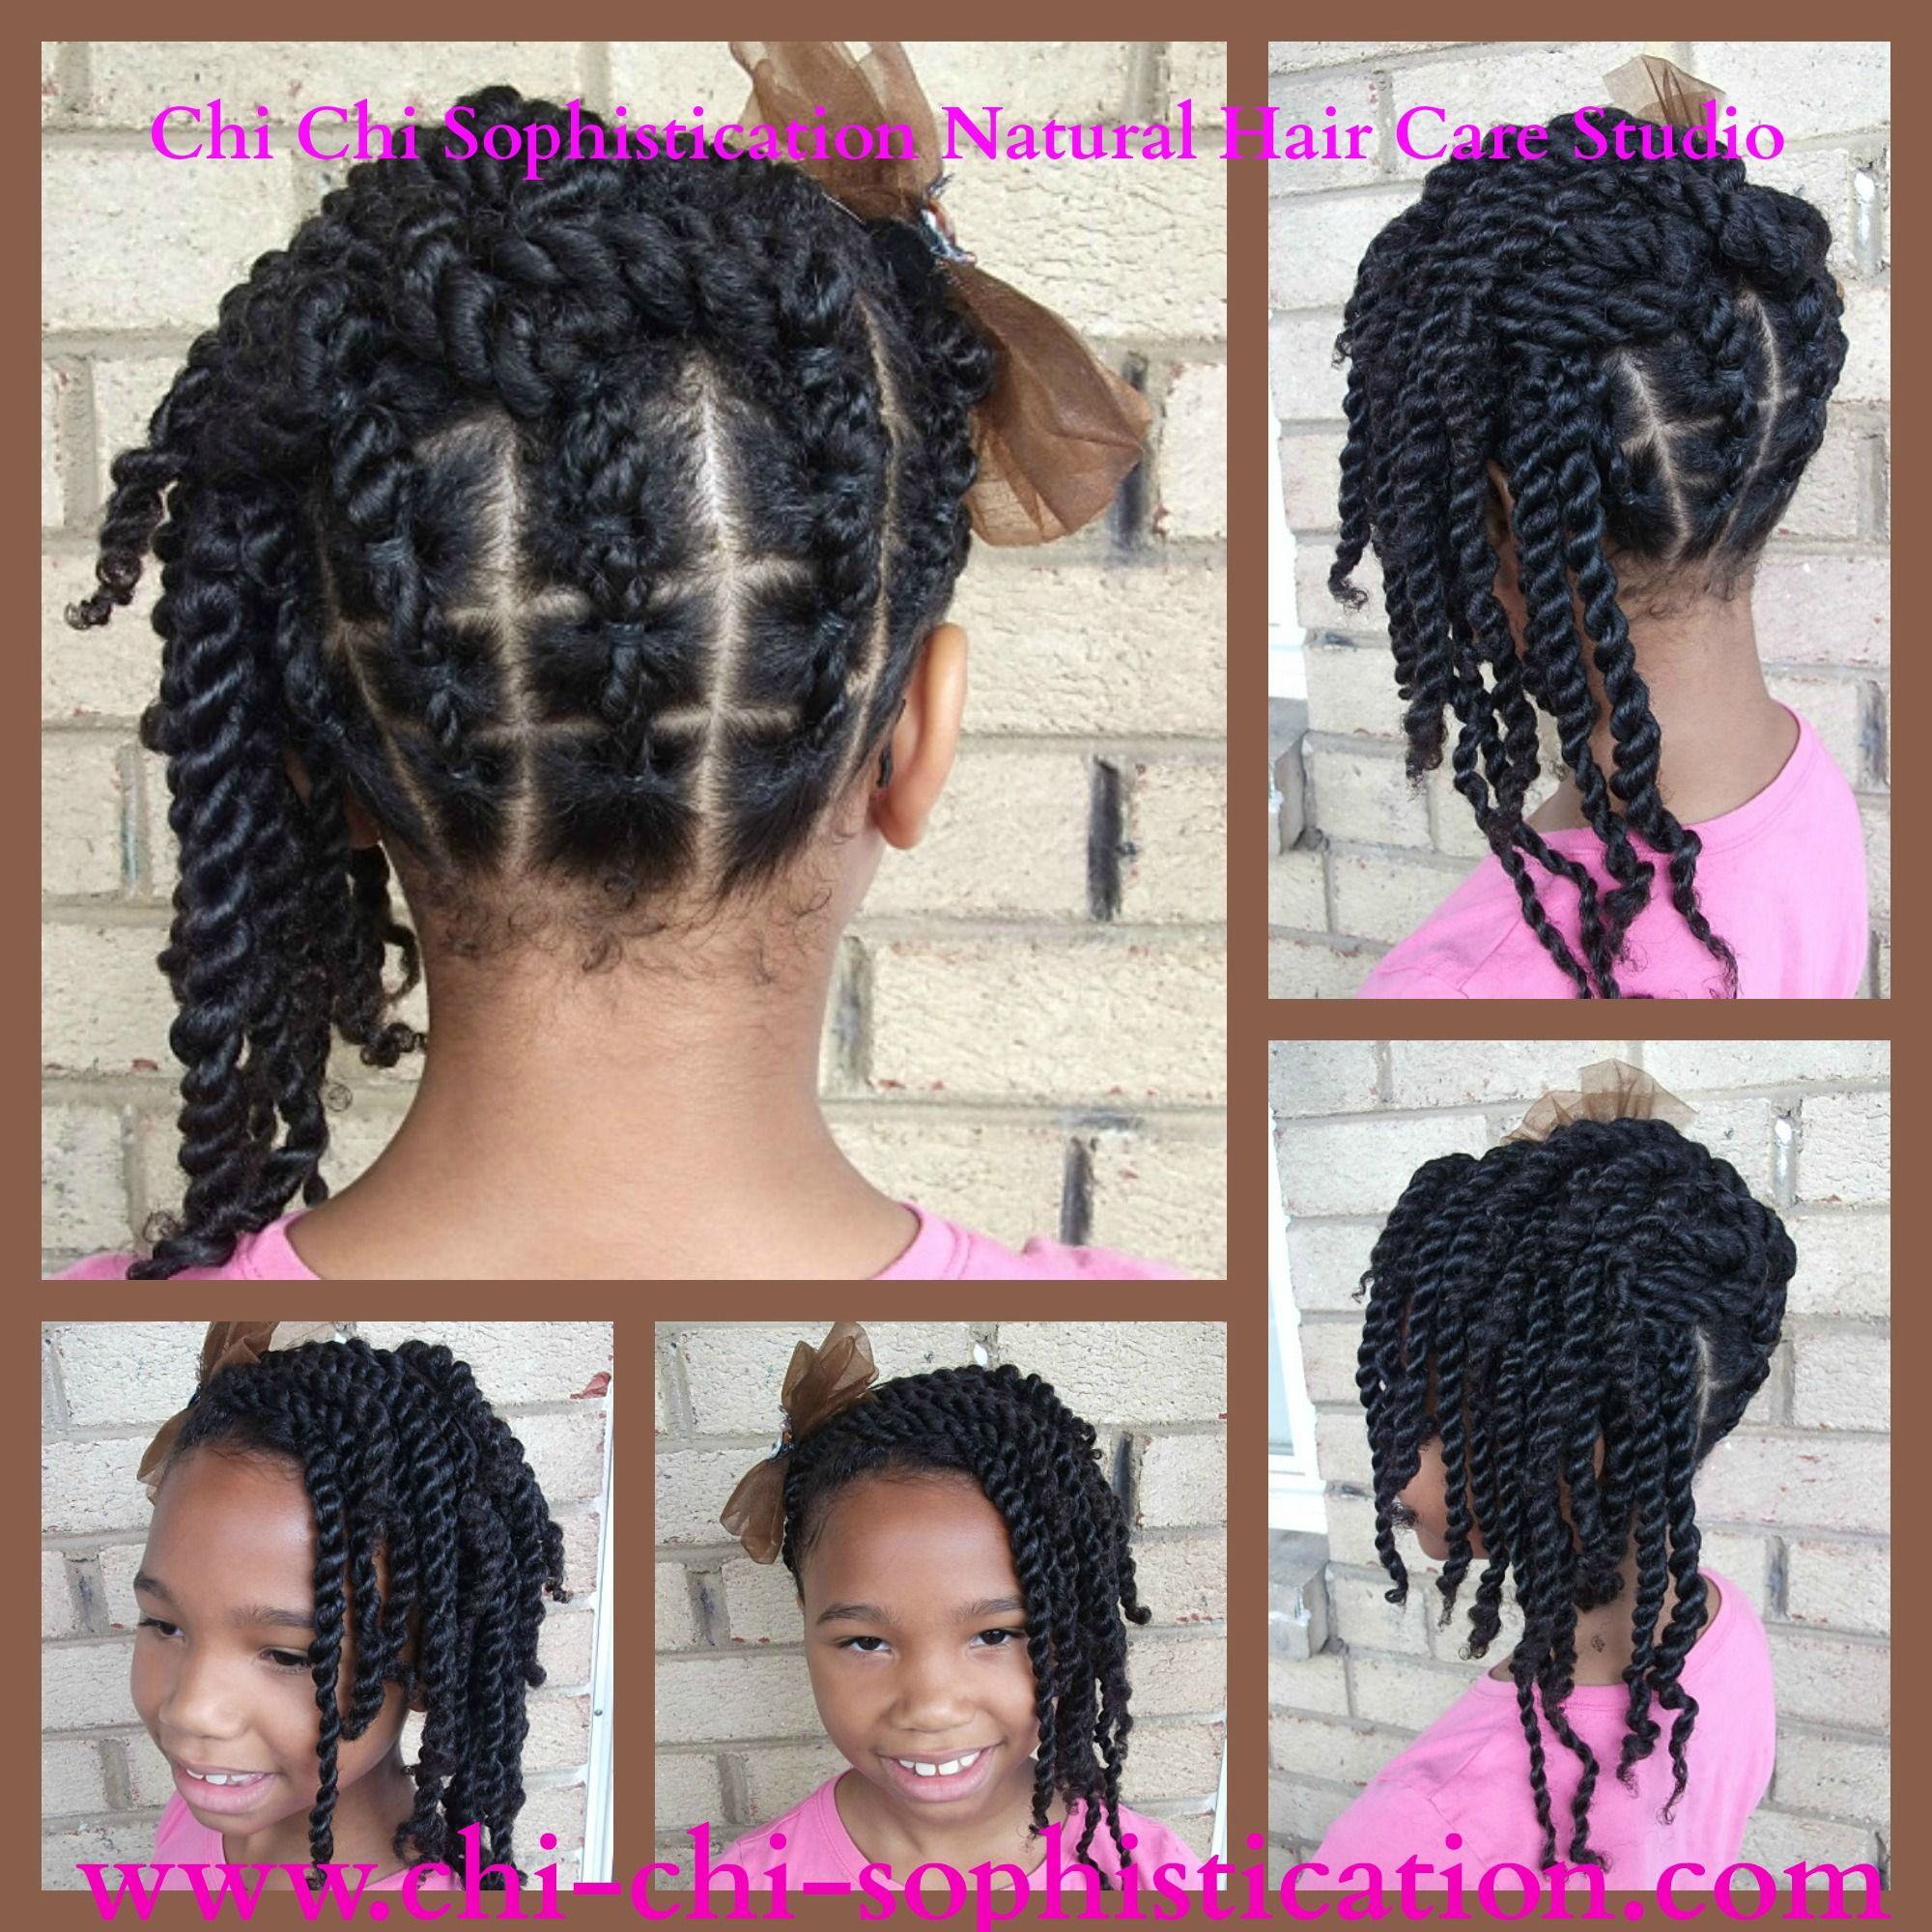 Ponytails Styled Into A Double Strand Twist Up Do Children